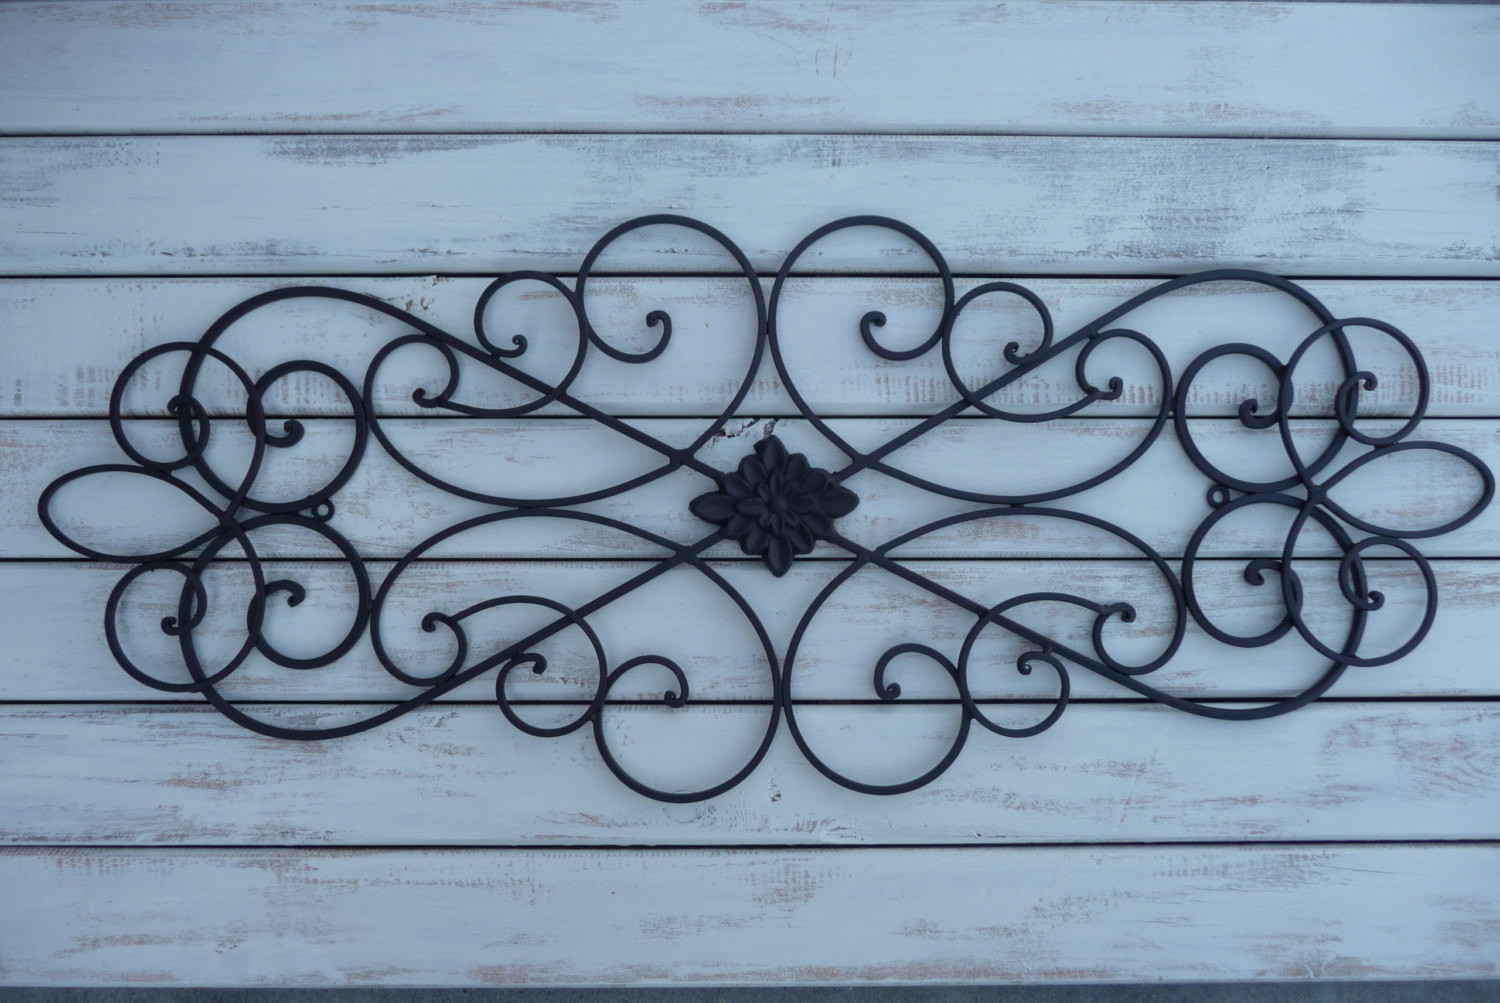 Best ideas about Wrought Iron Wall Art . Save or Pin Wrought Iron Wall Decor Bedroom Bed Headboard Black Wall Now.